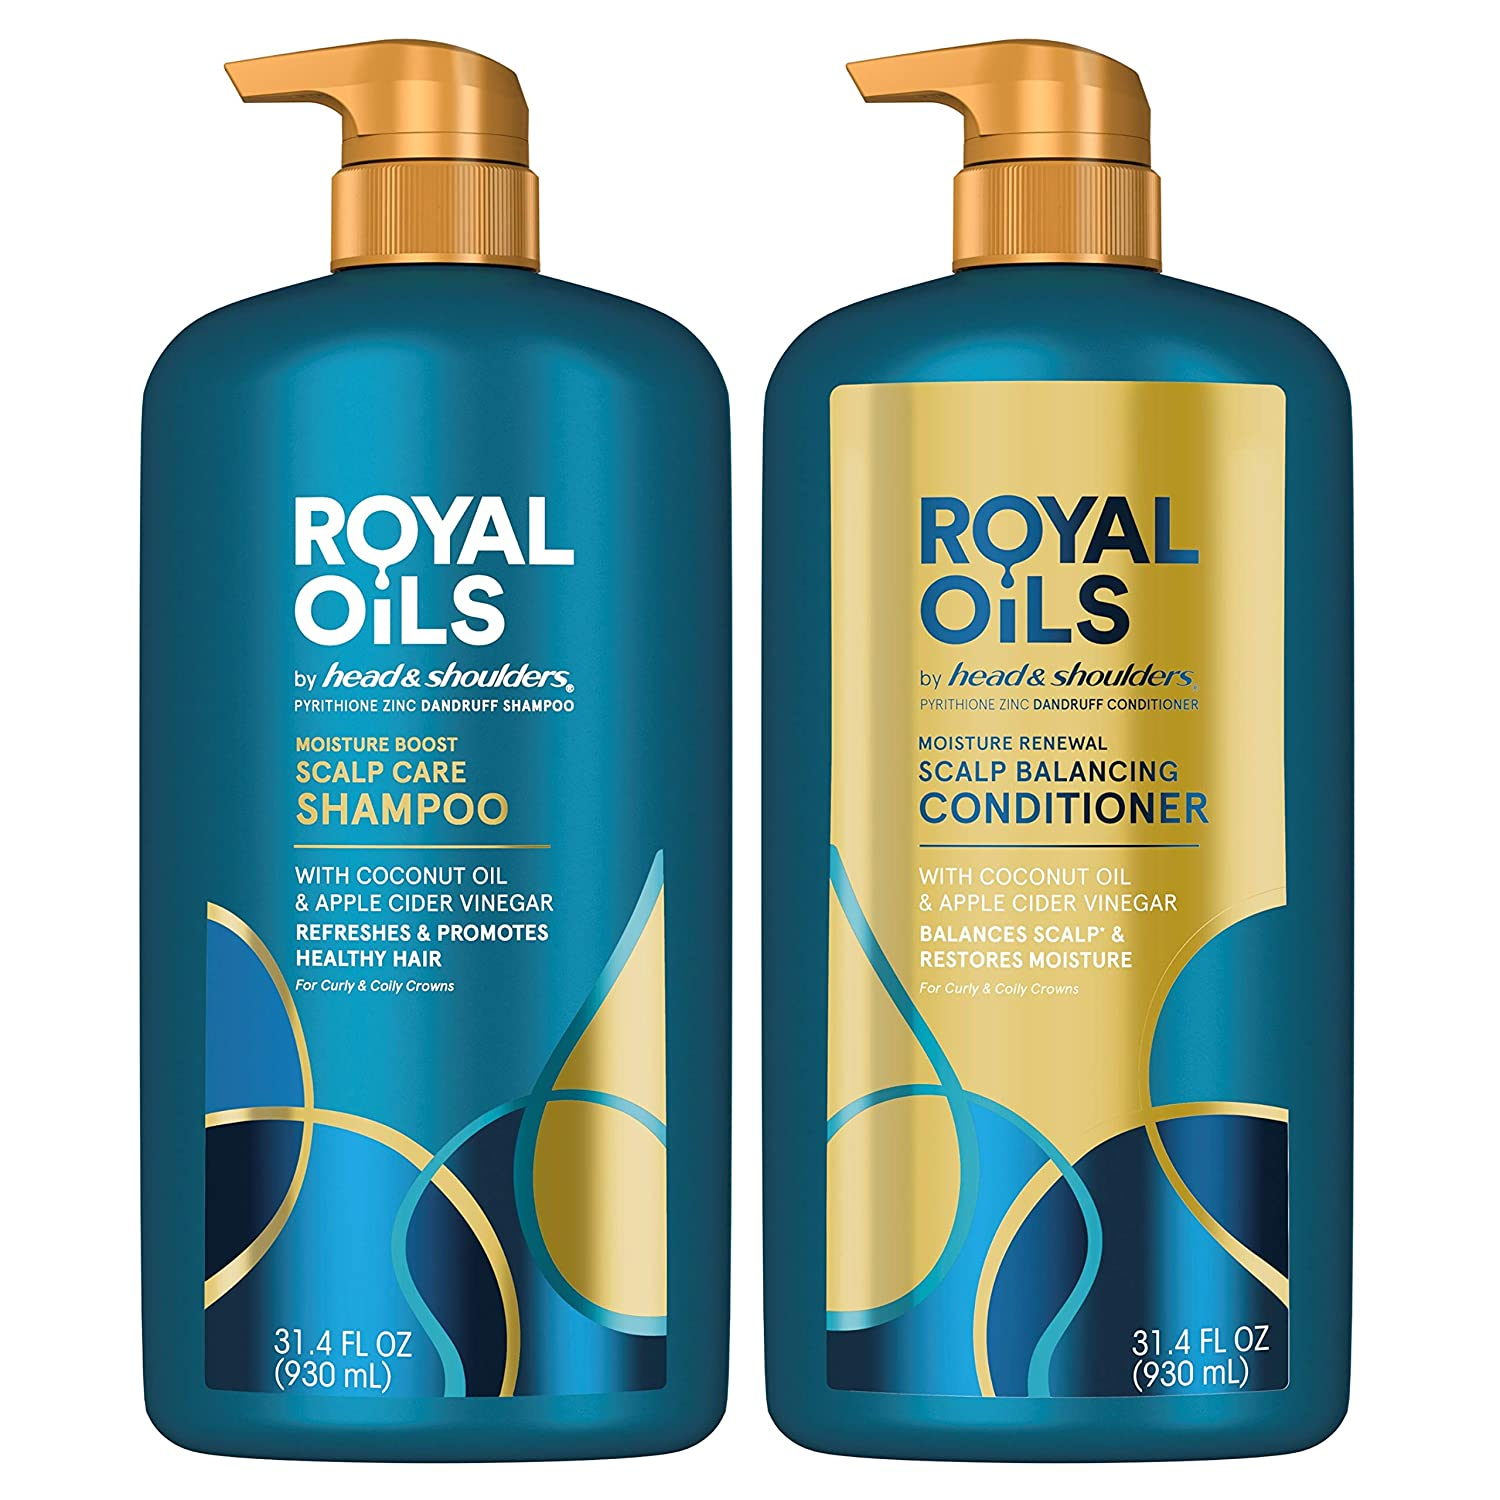 Head & Shoulders Royal Oils Dandruff Shampoo & Conditioner Set with Coconut Oil and Apple Cider Vinegar, Curly Hair Products, 31.4 Oz Each